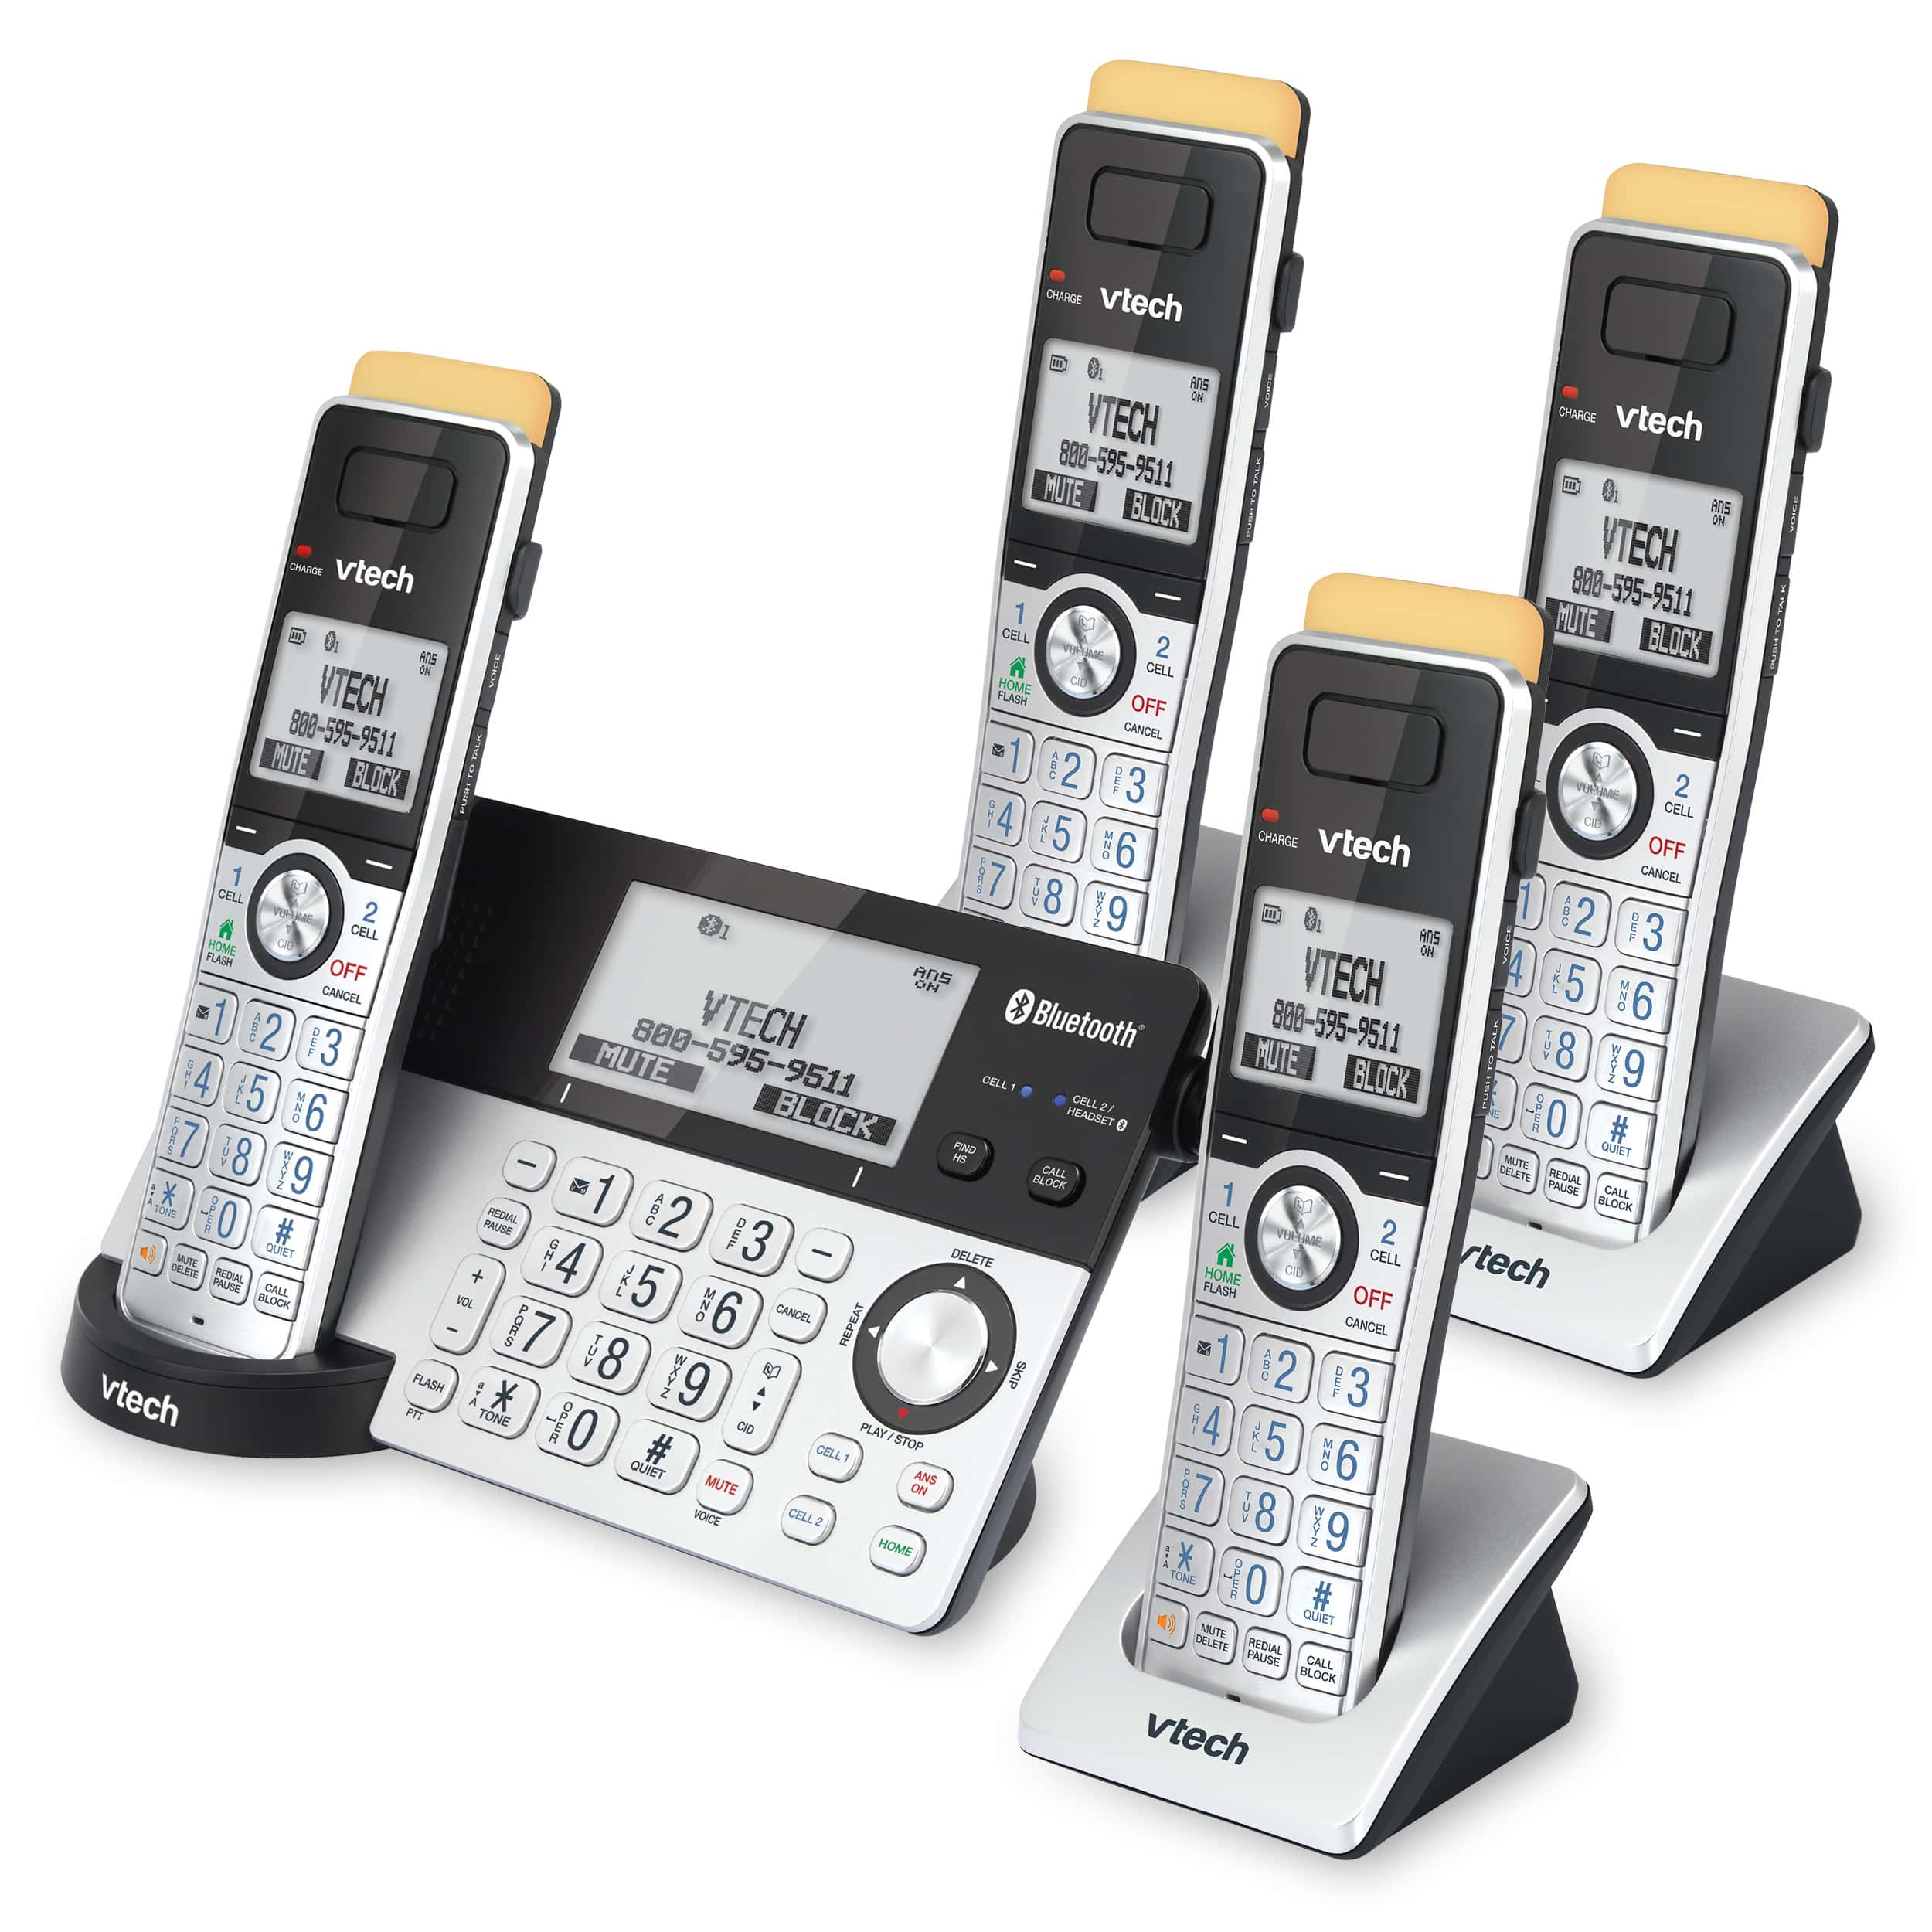 4-Handset Expandable Cordless Phone with Super Long Range, Bluetooth Connect to Cell, Smart Call Blocker and Answering System, IS8151-4